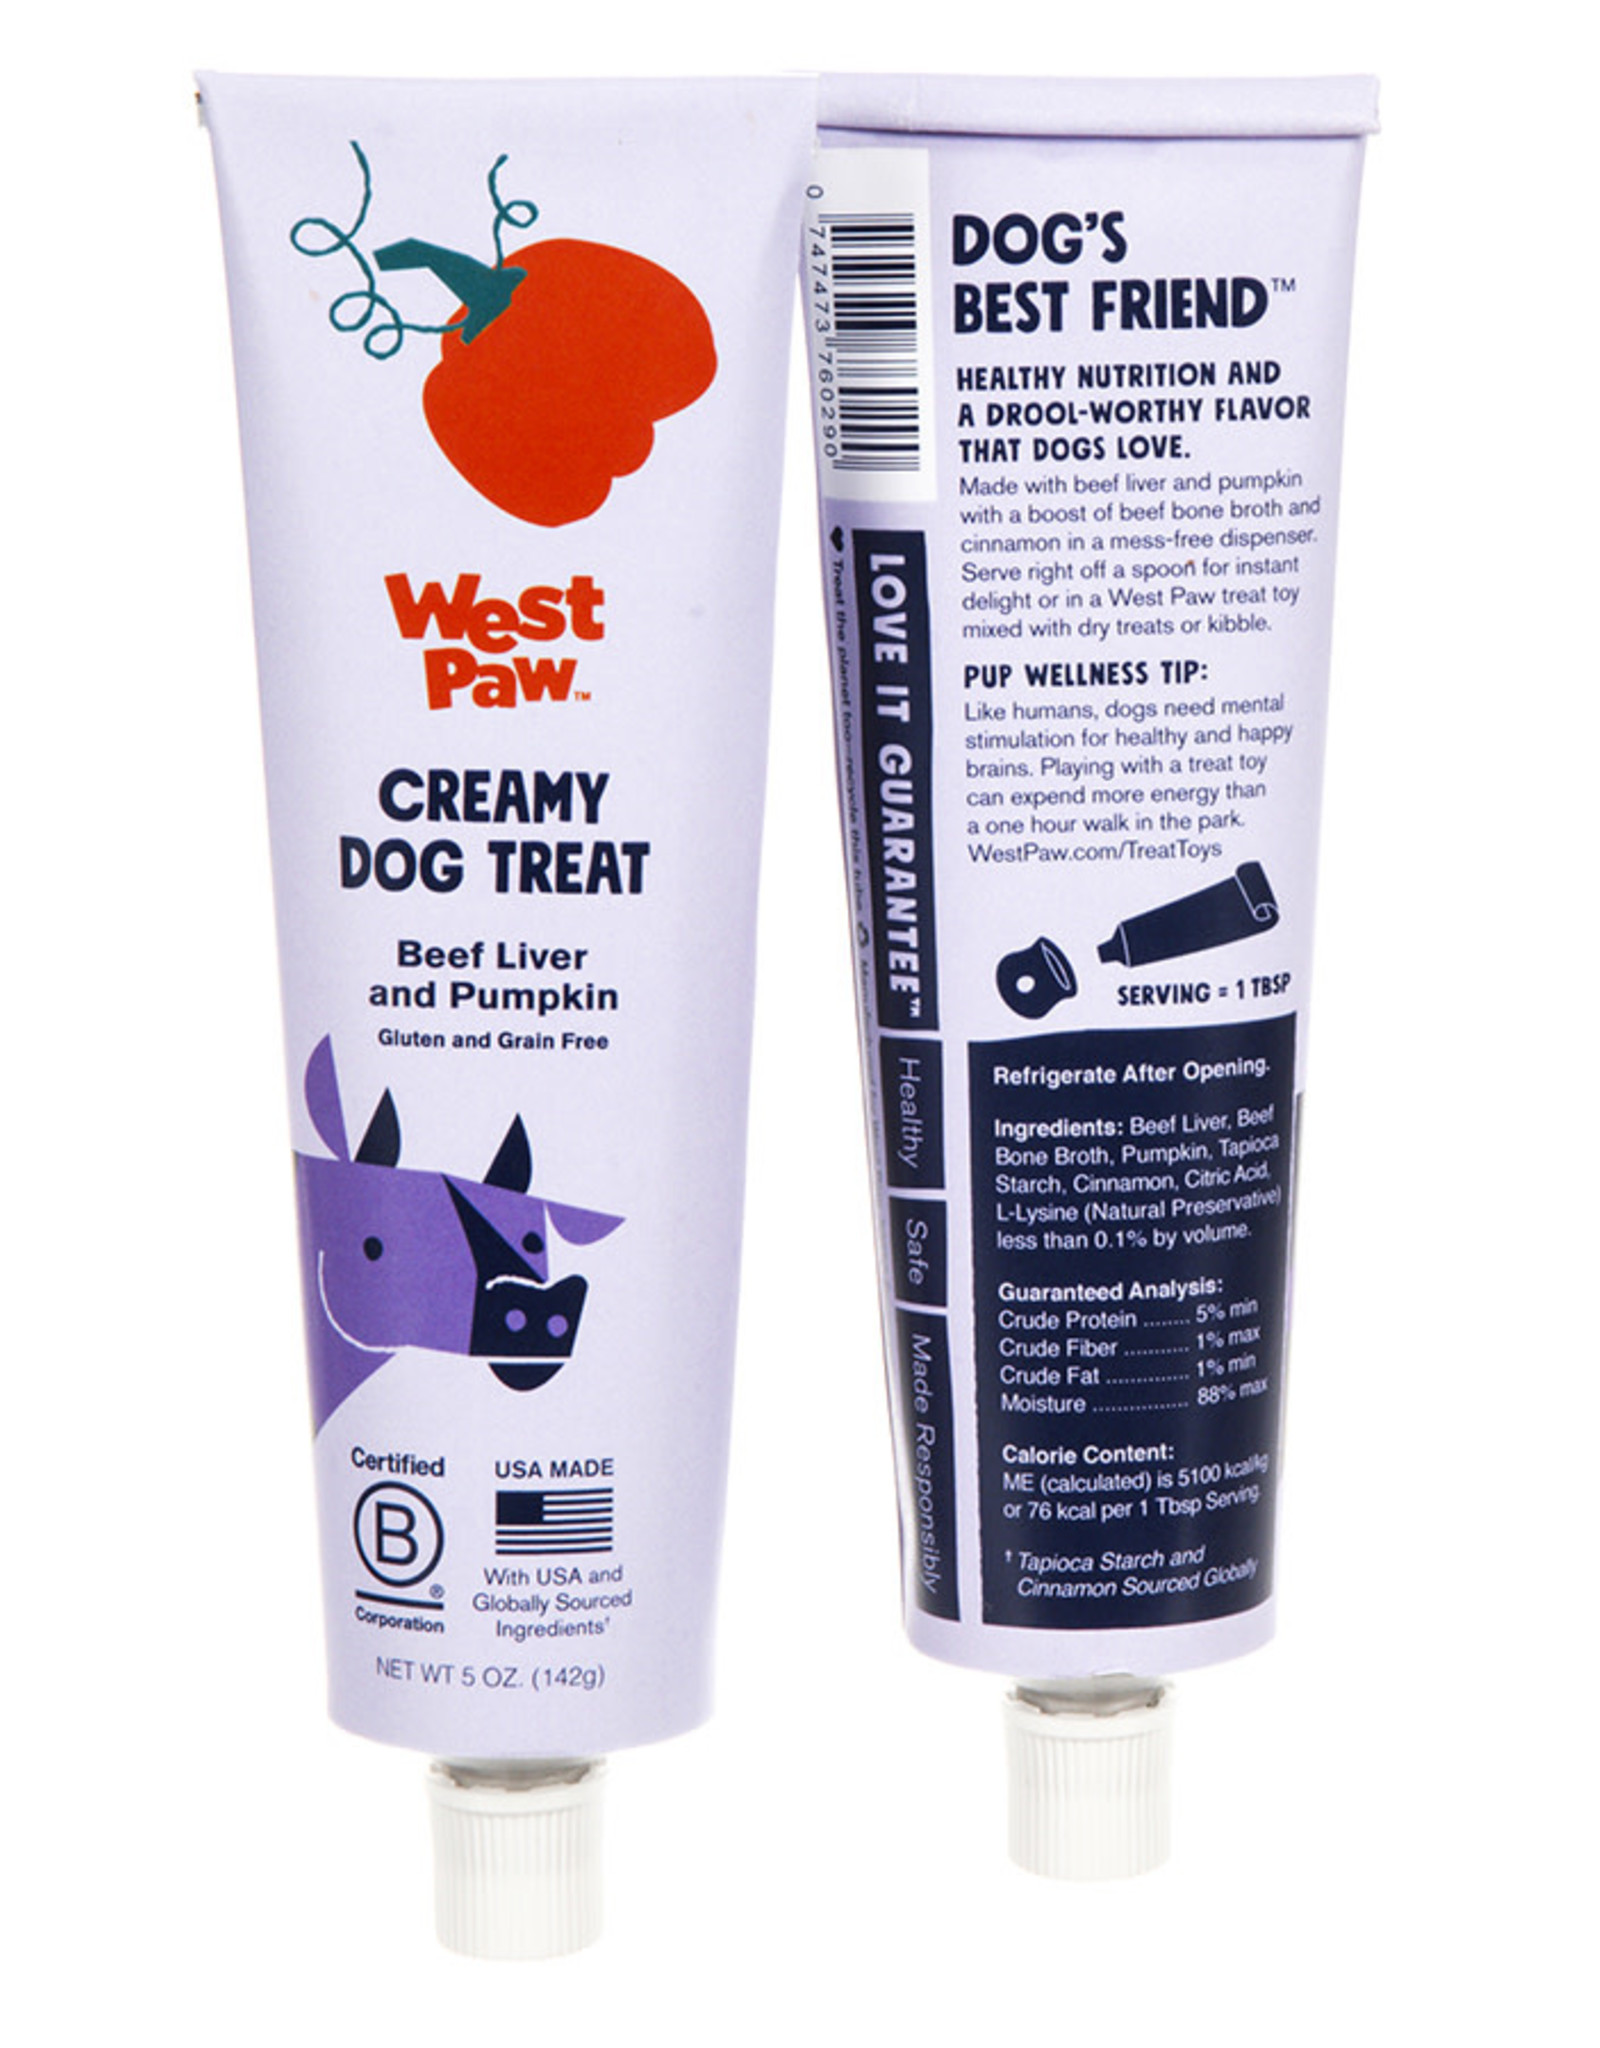 West Paw West Paw Creamy Beef Liver and Pumpkin 5oz